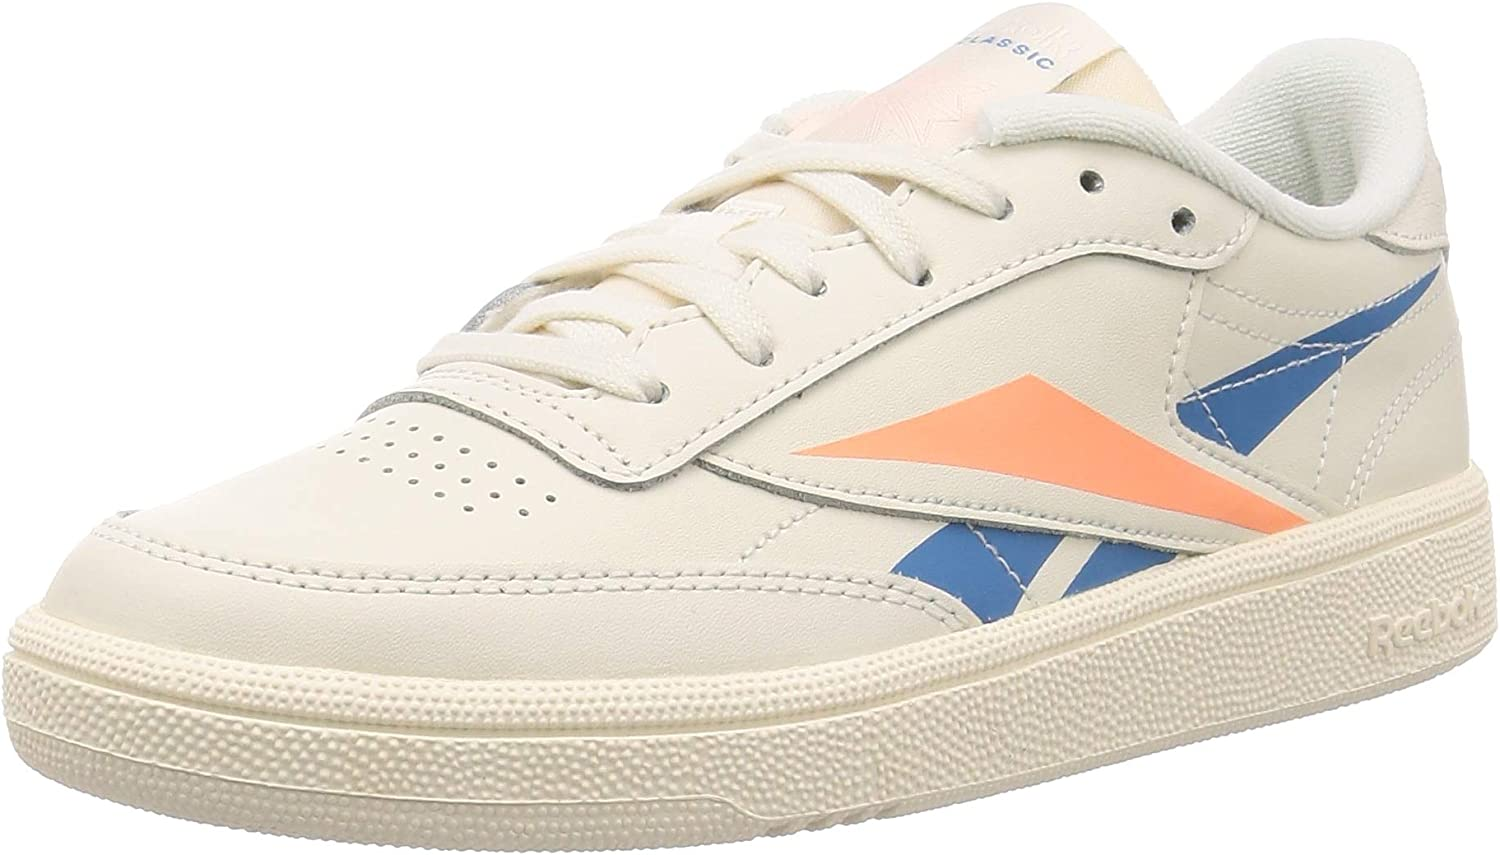 Reebok Classic Leather Trainers Outdoor Women/'s Warm Sneakers Insulated Shoes